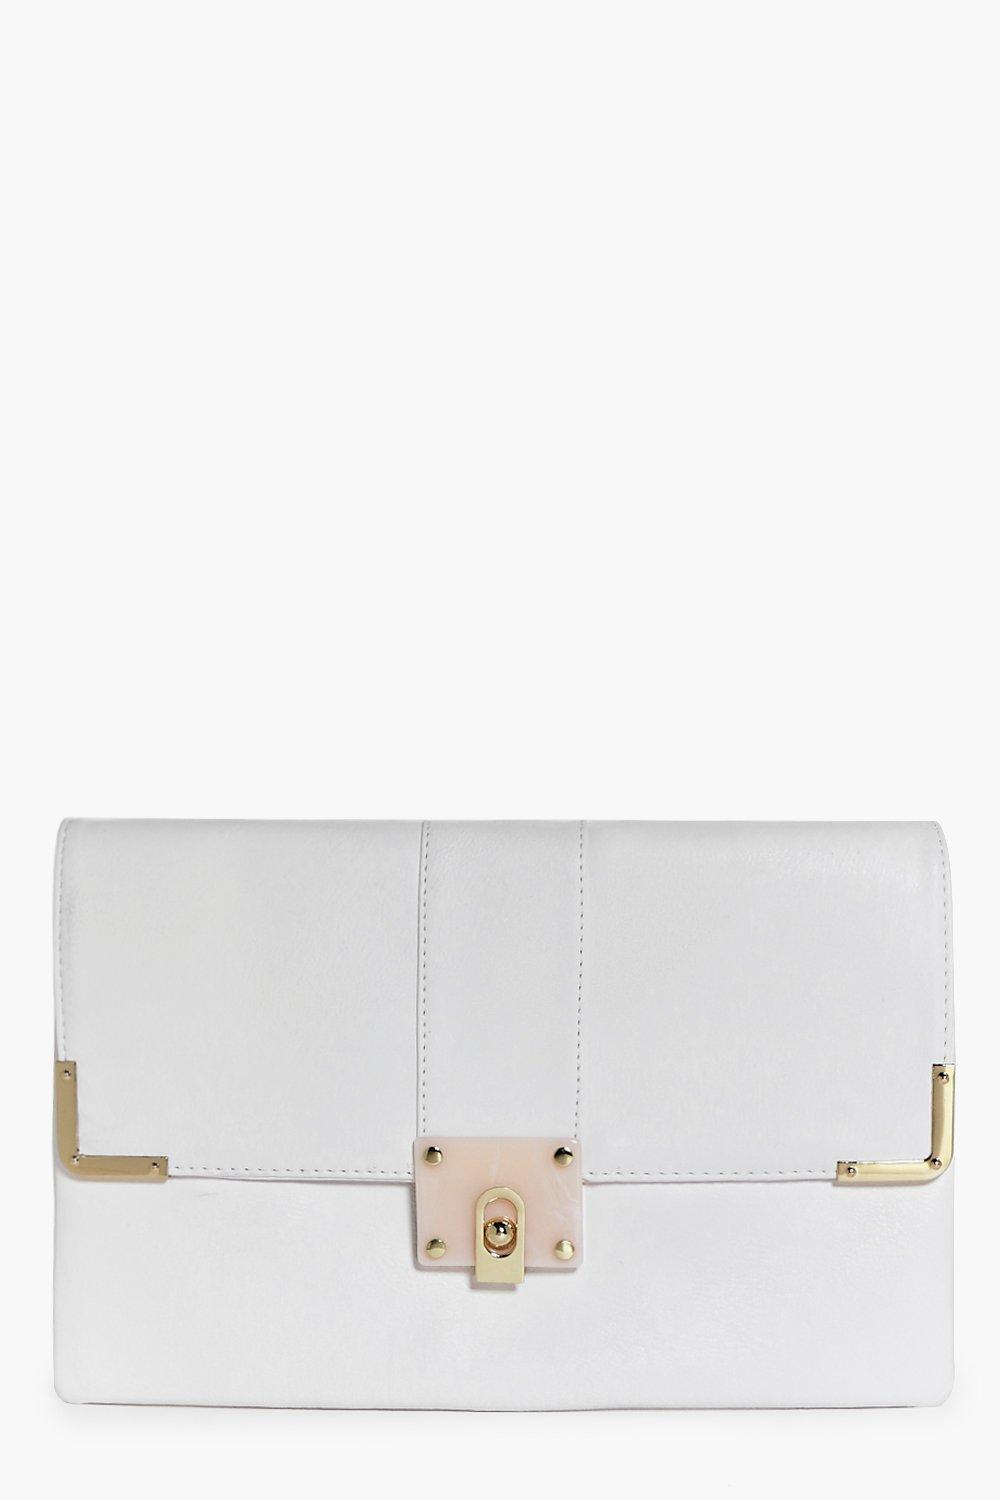 Marble Clasp Detail Clutch Bag white